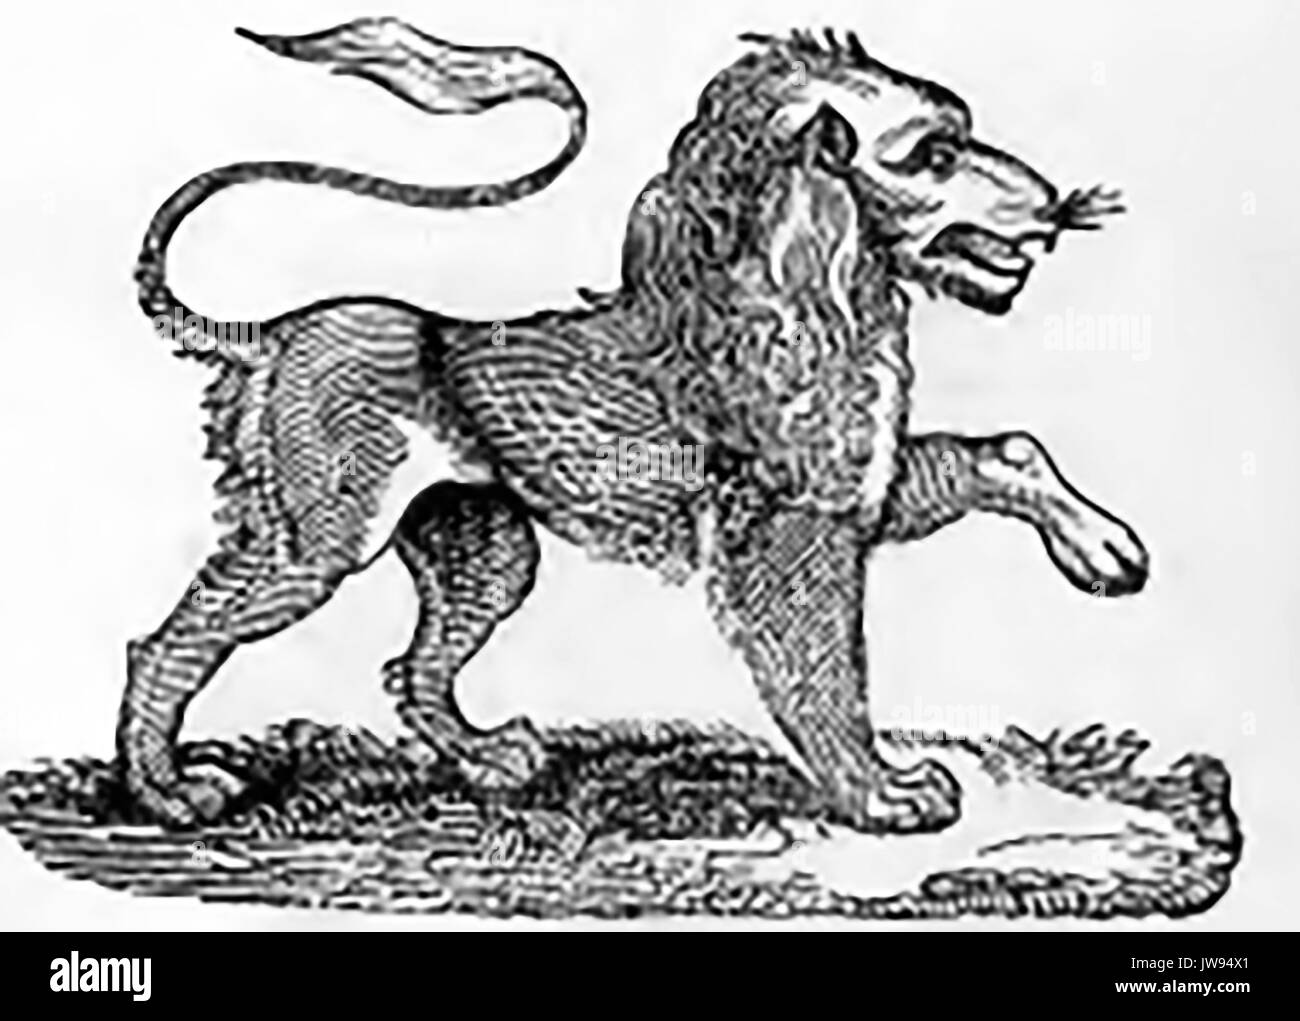 Early English woodcut showing the British Lion - Stock Image